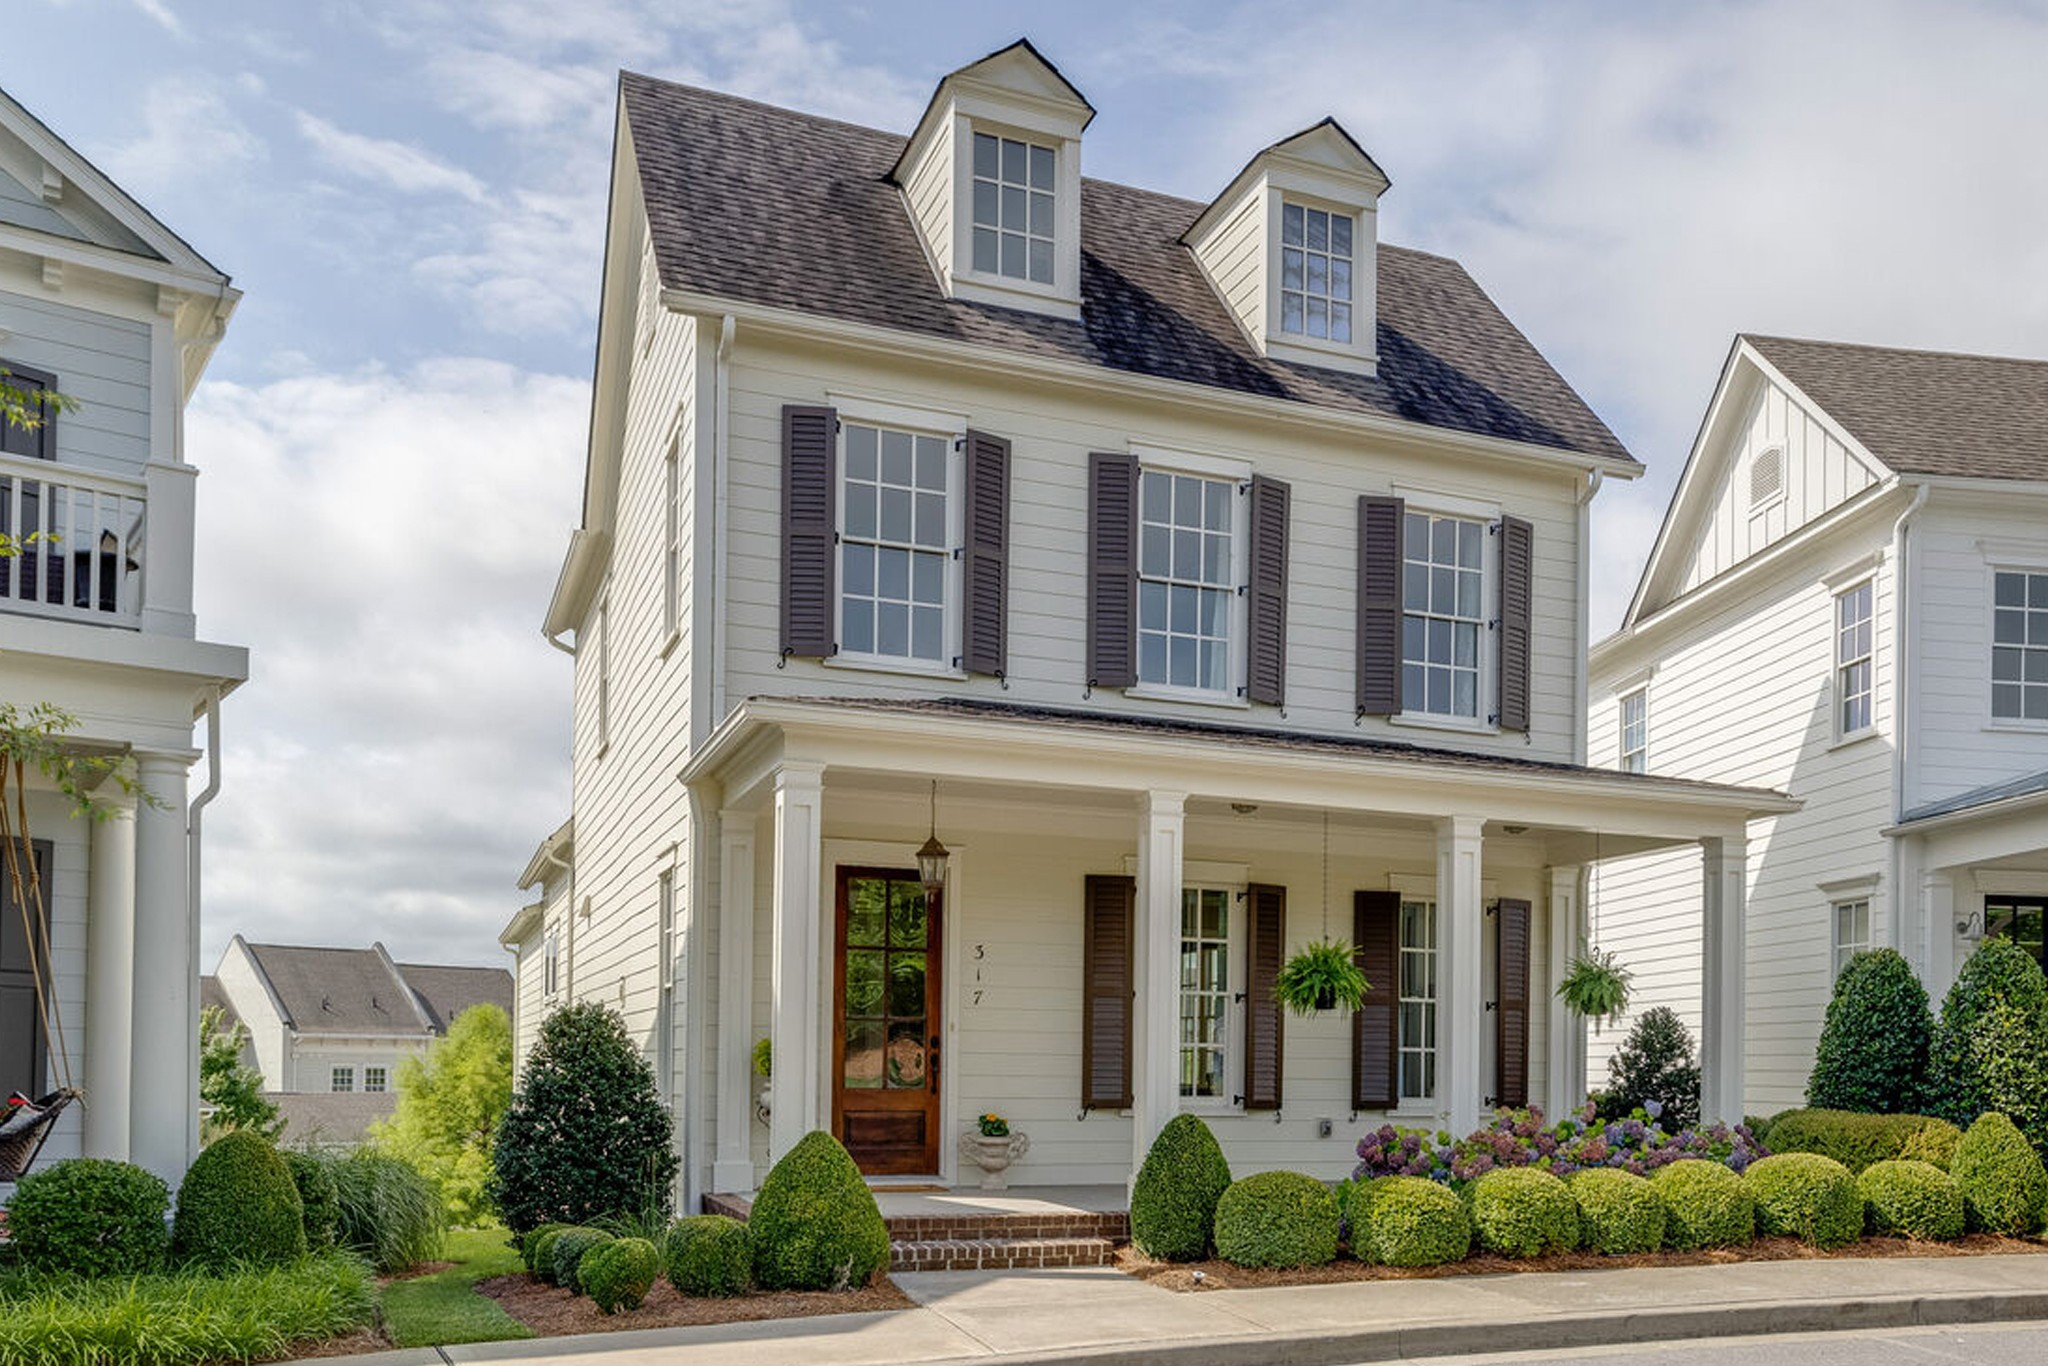 BERRY FARMS…Ford Custom Built Home*Open & bright w/ high-end finishes*Hdwds*10'ceilings*Gourmet kit w/granite, SS appl, walk-in pantry*LR w/gas FP & built-ins*Spacious Primary Ste on main w/2 closets*2nd Level: Large bonus Rm, 3 Bdrms, 2 Full Ba*Covered Porch & Patio*Garage storage or golf cart tandem*On cul-de-sac w/beautiful common area*Pristine*Move-in Ready*FIRST SHOWINGS Fri/ 7/16/21*OPEN HOUSE 7/18/21 2-4pm*OFFERS due noon 7/19/21.